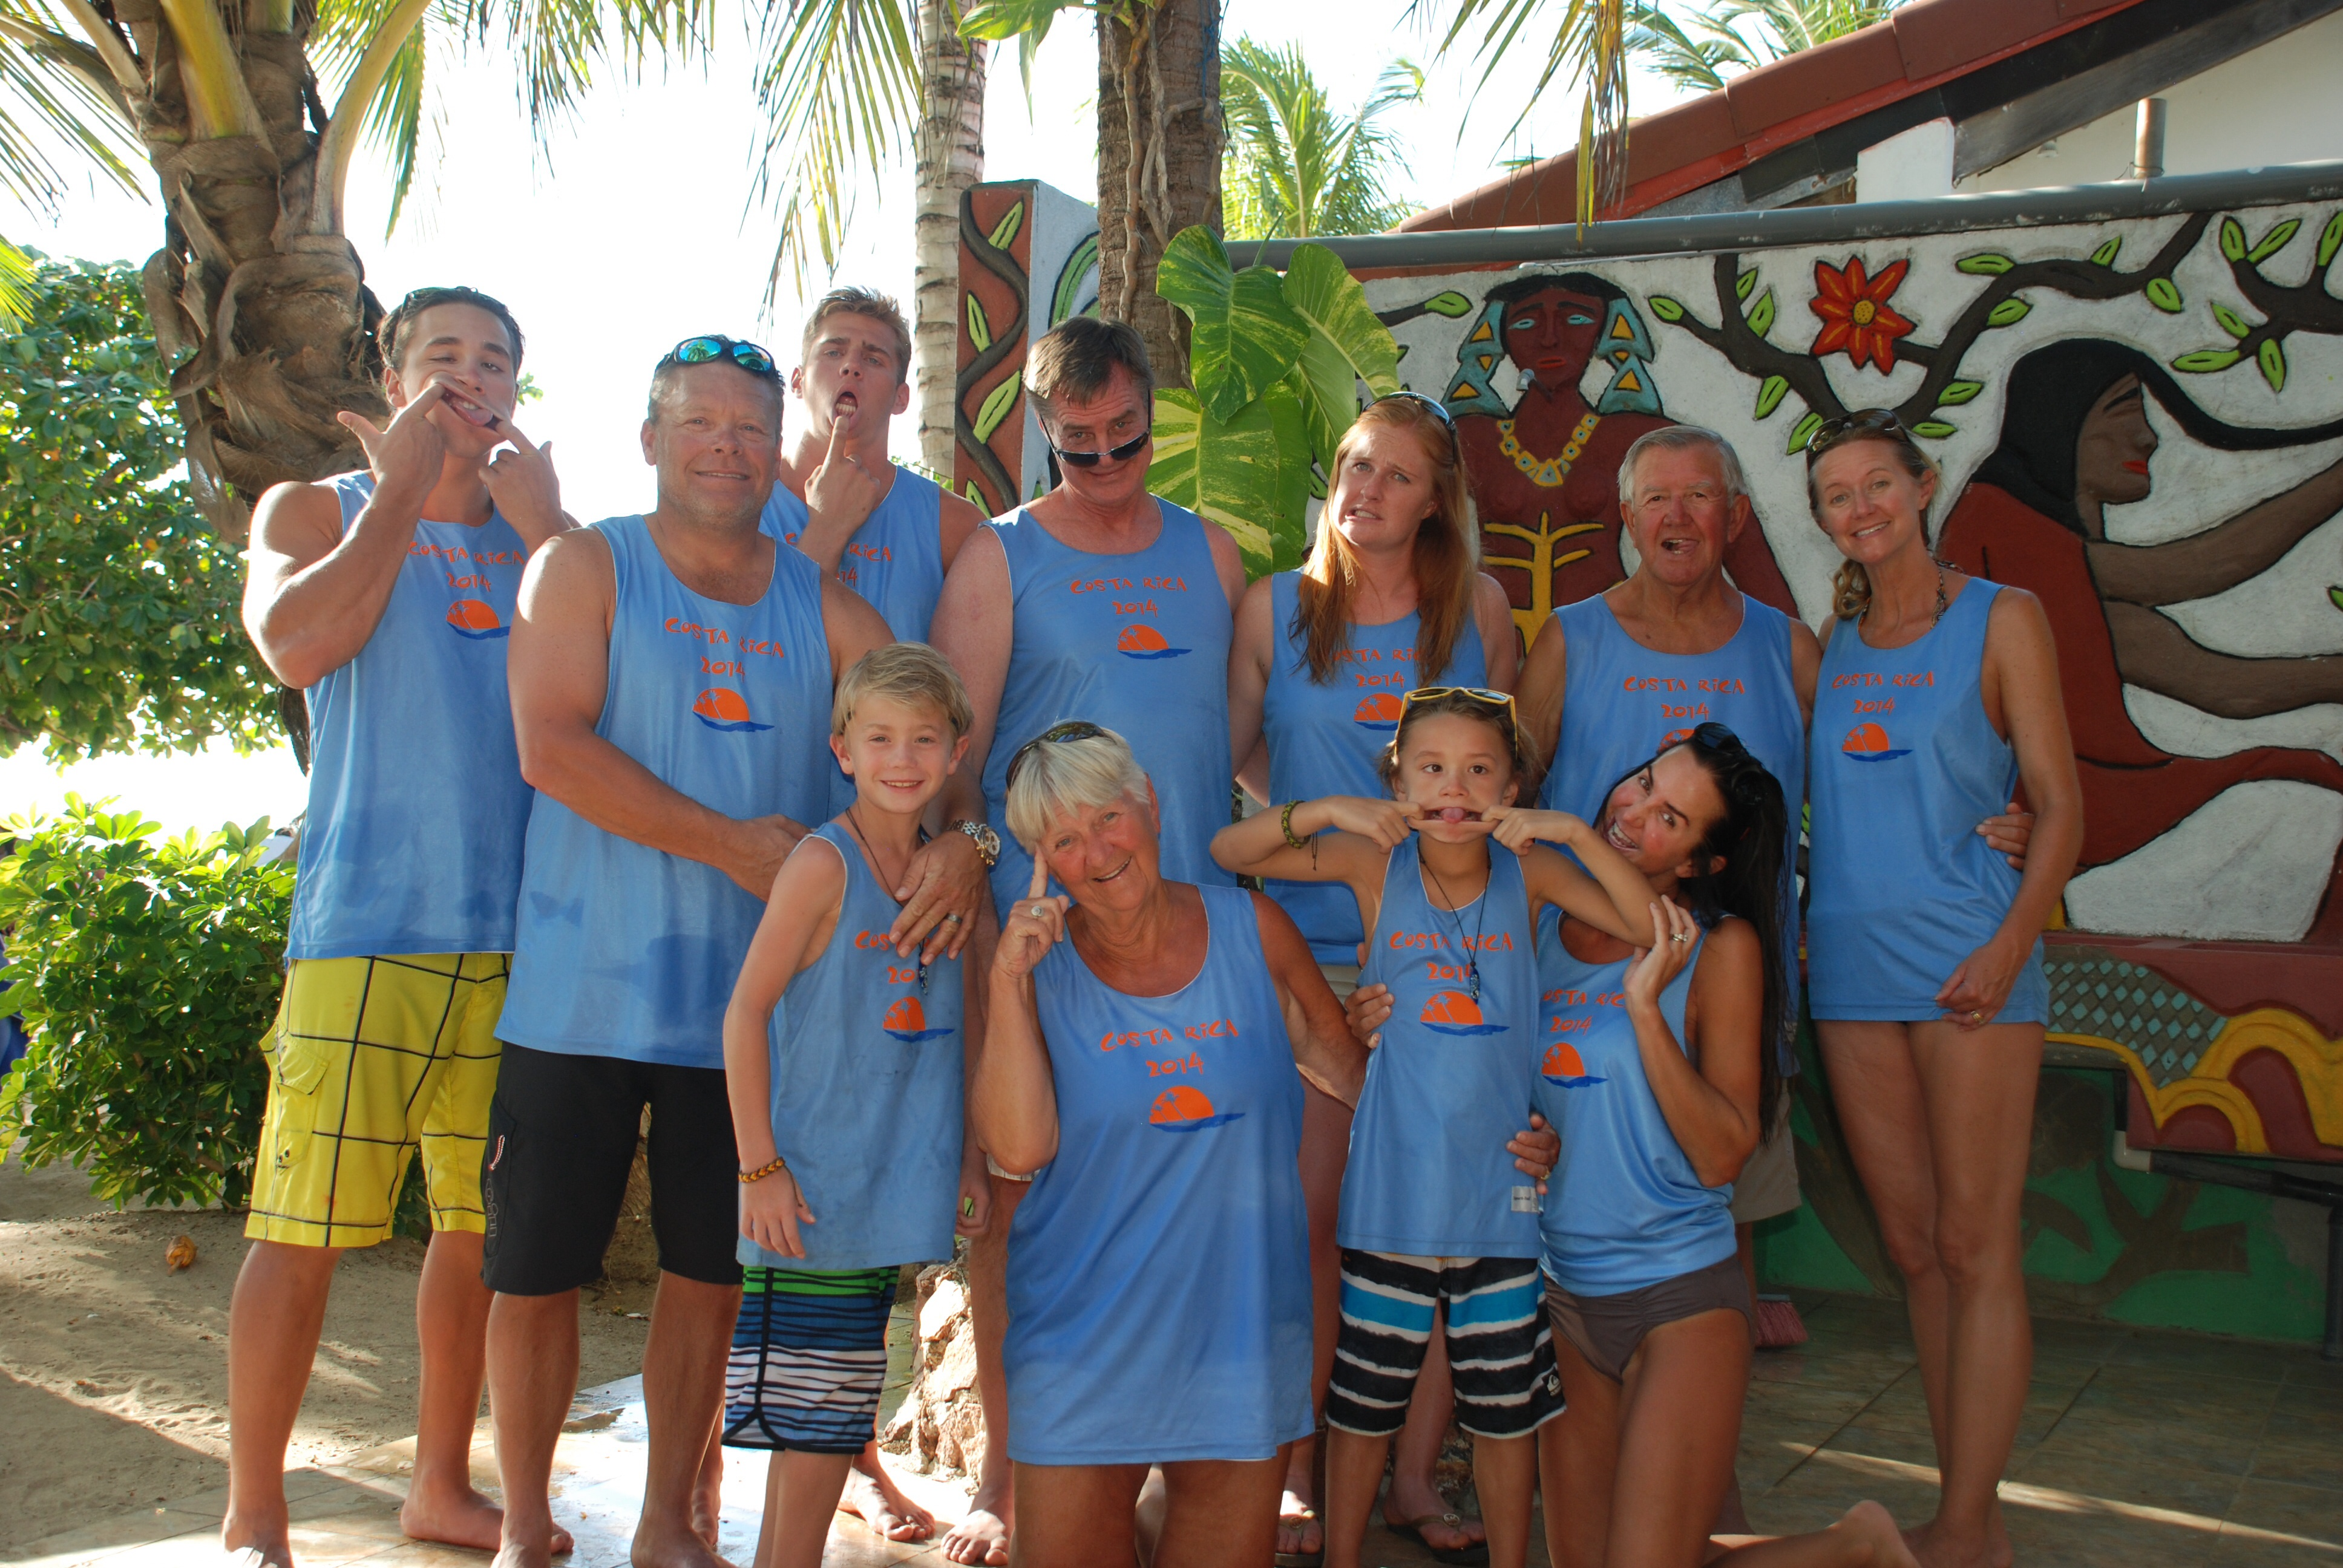 Custom T Shirts For Family Fun Shirt Design Ideas Find vacation packages to costa rica on tripadvisor by comparing prices and reading costa rica hotel reviews. custom ink